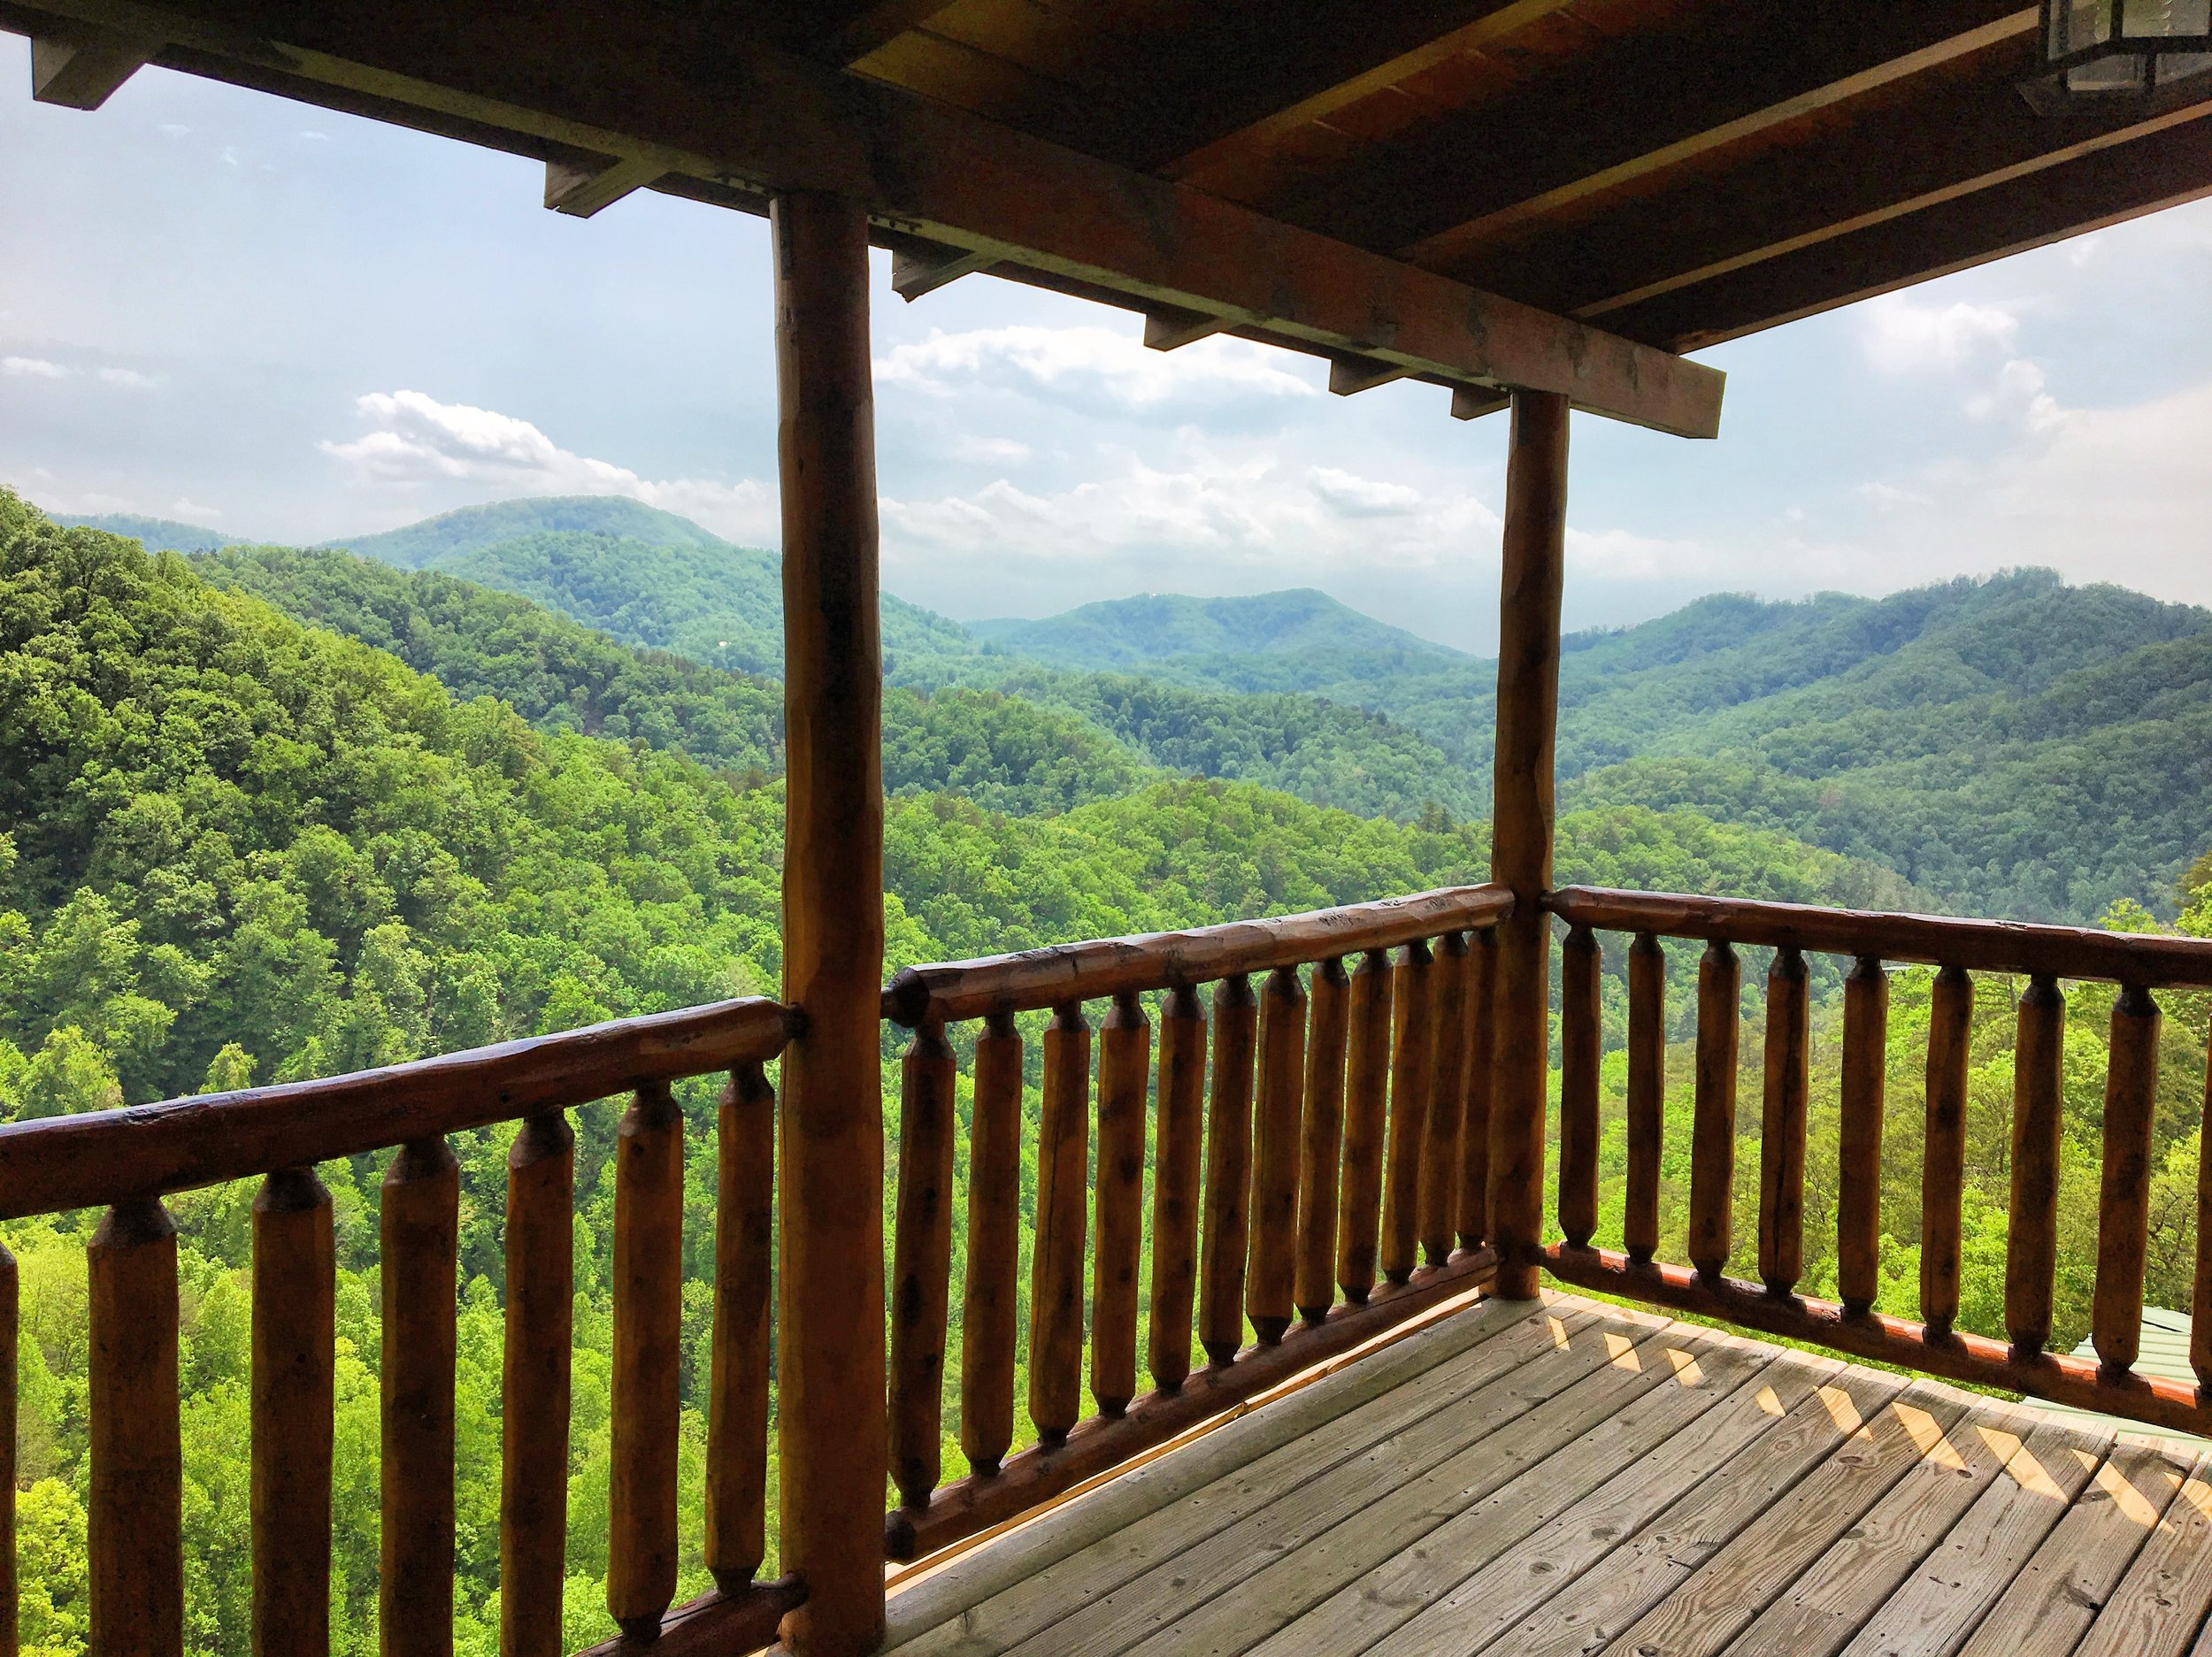 Unbeatable view from a Tennessee AirBNB